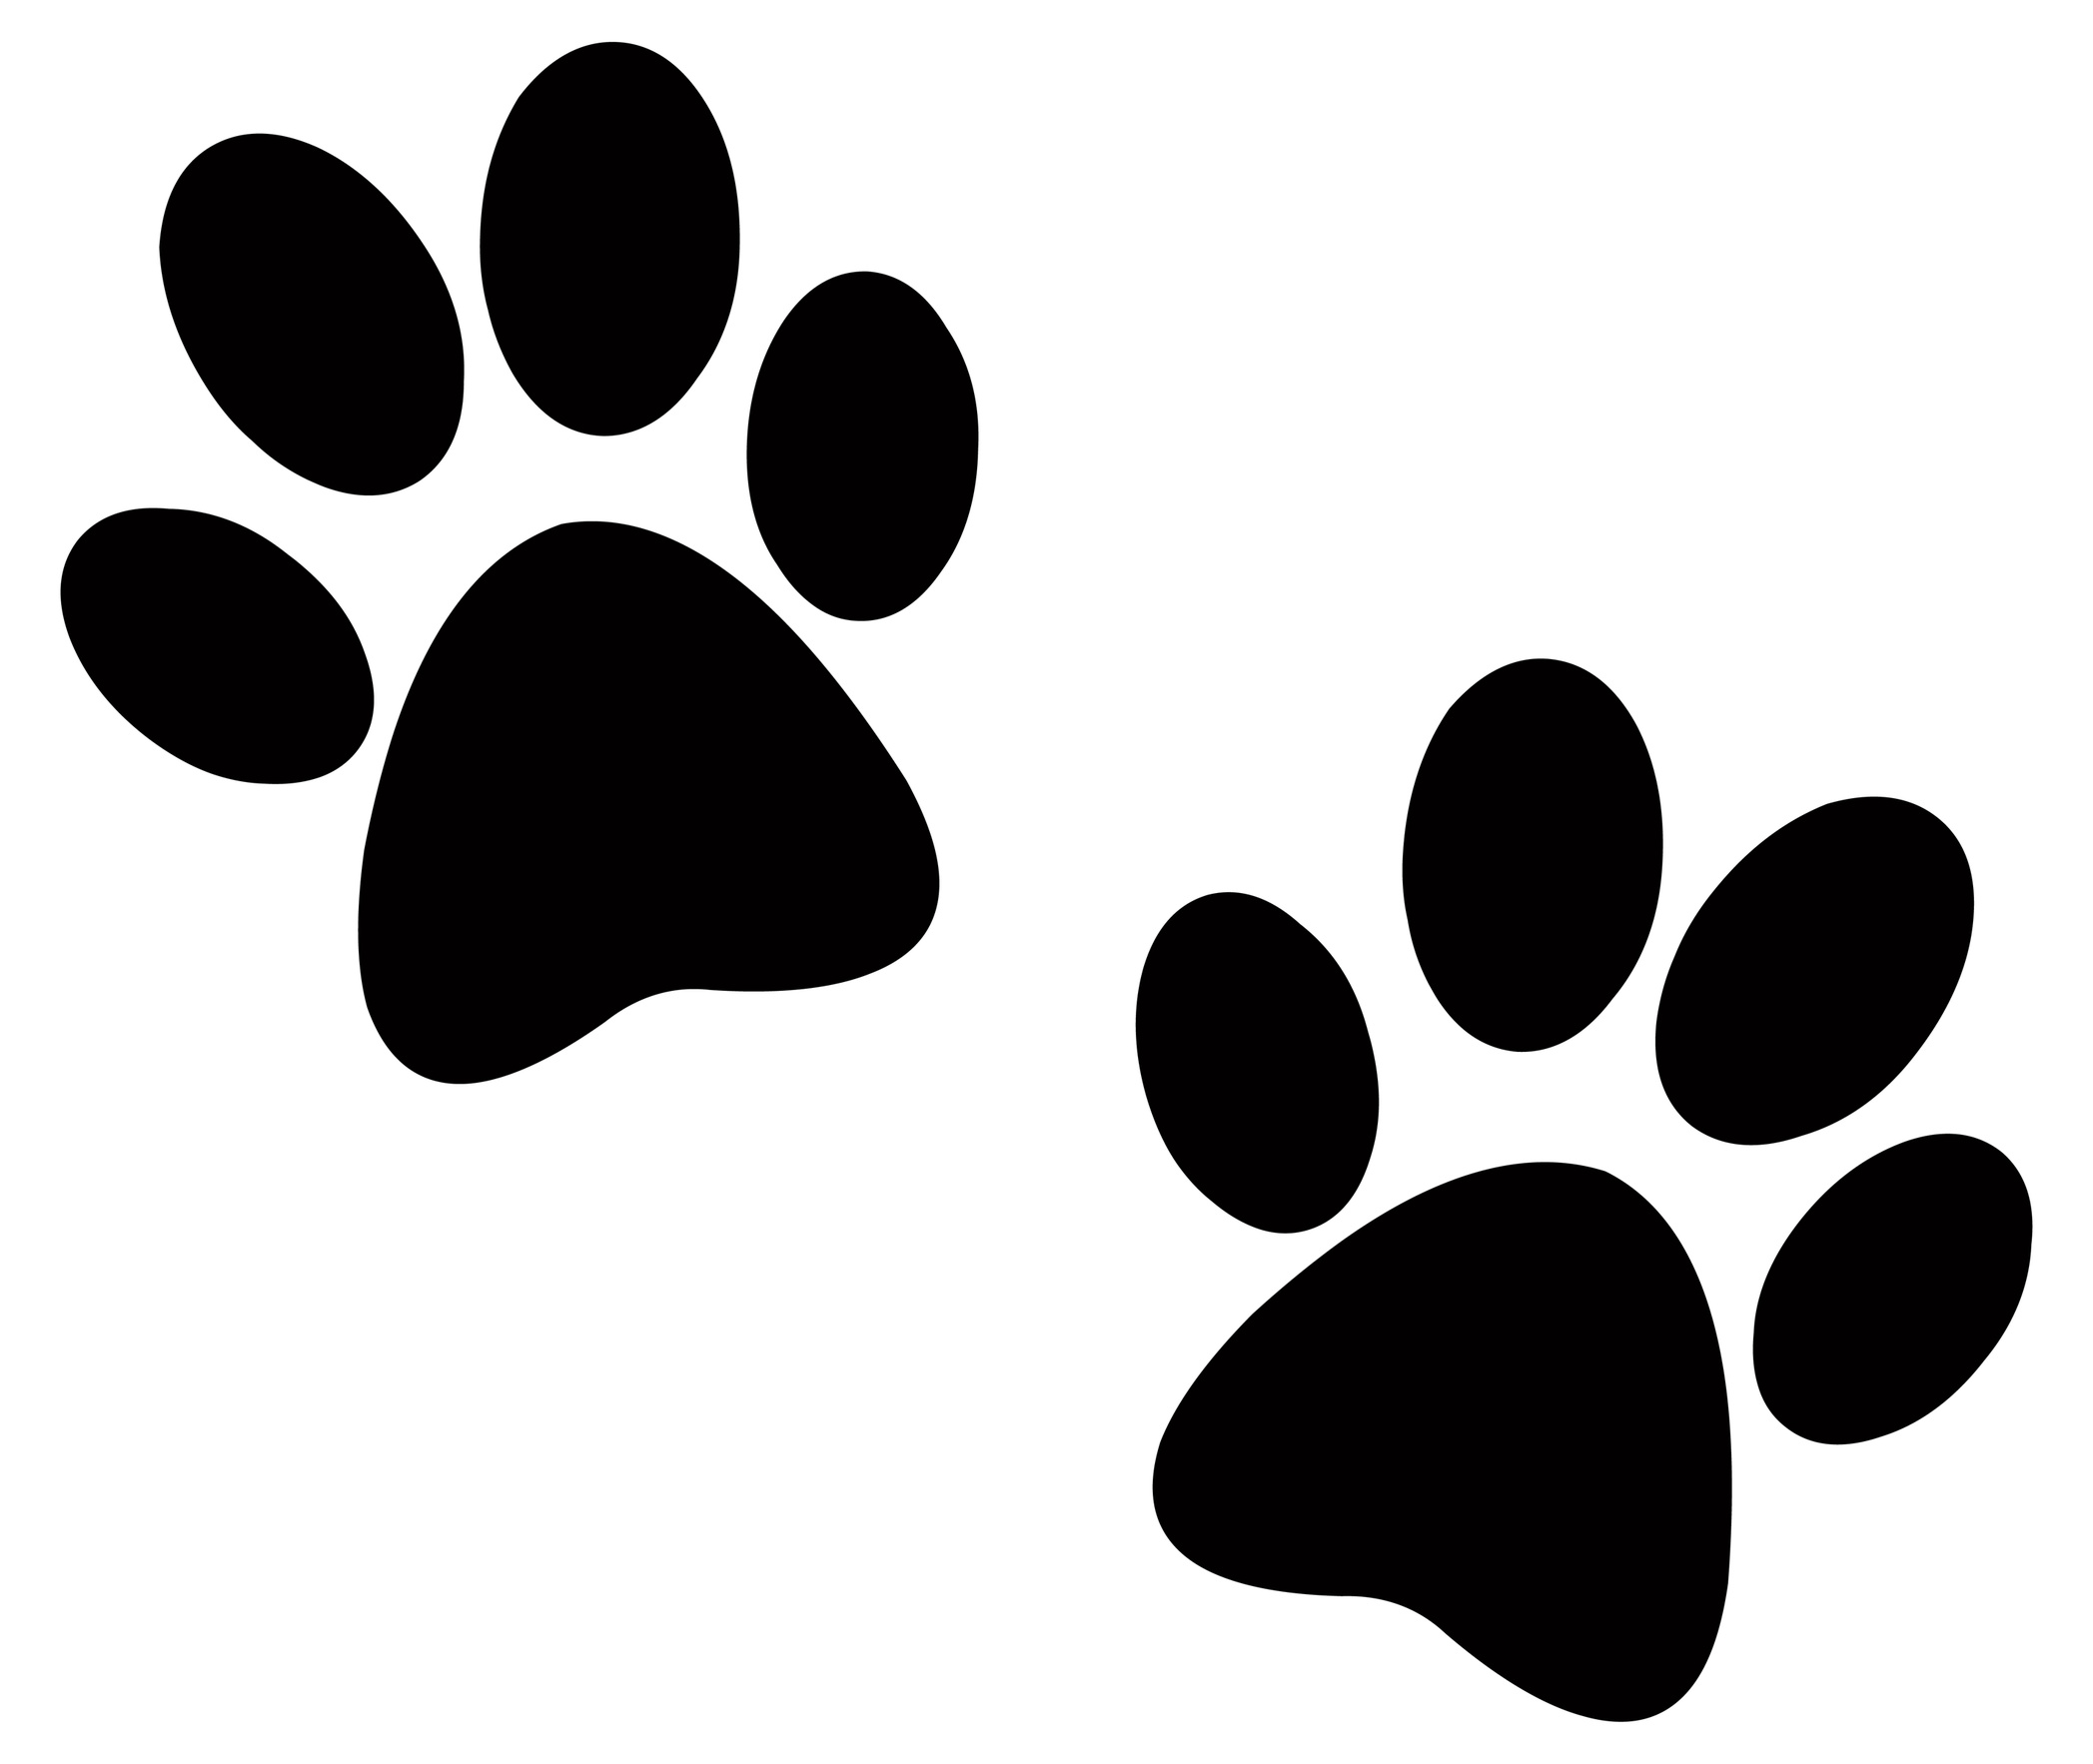 Free dog paw print. Paws clipart